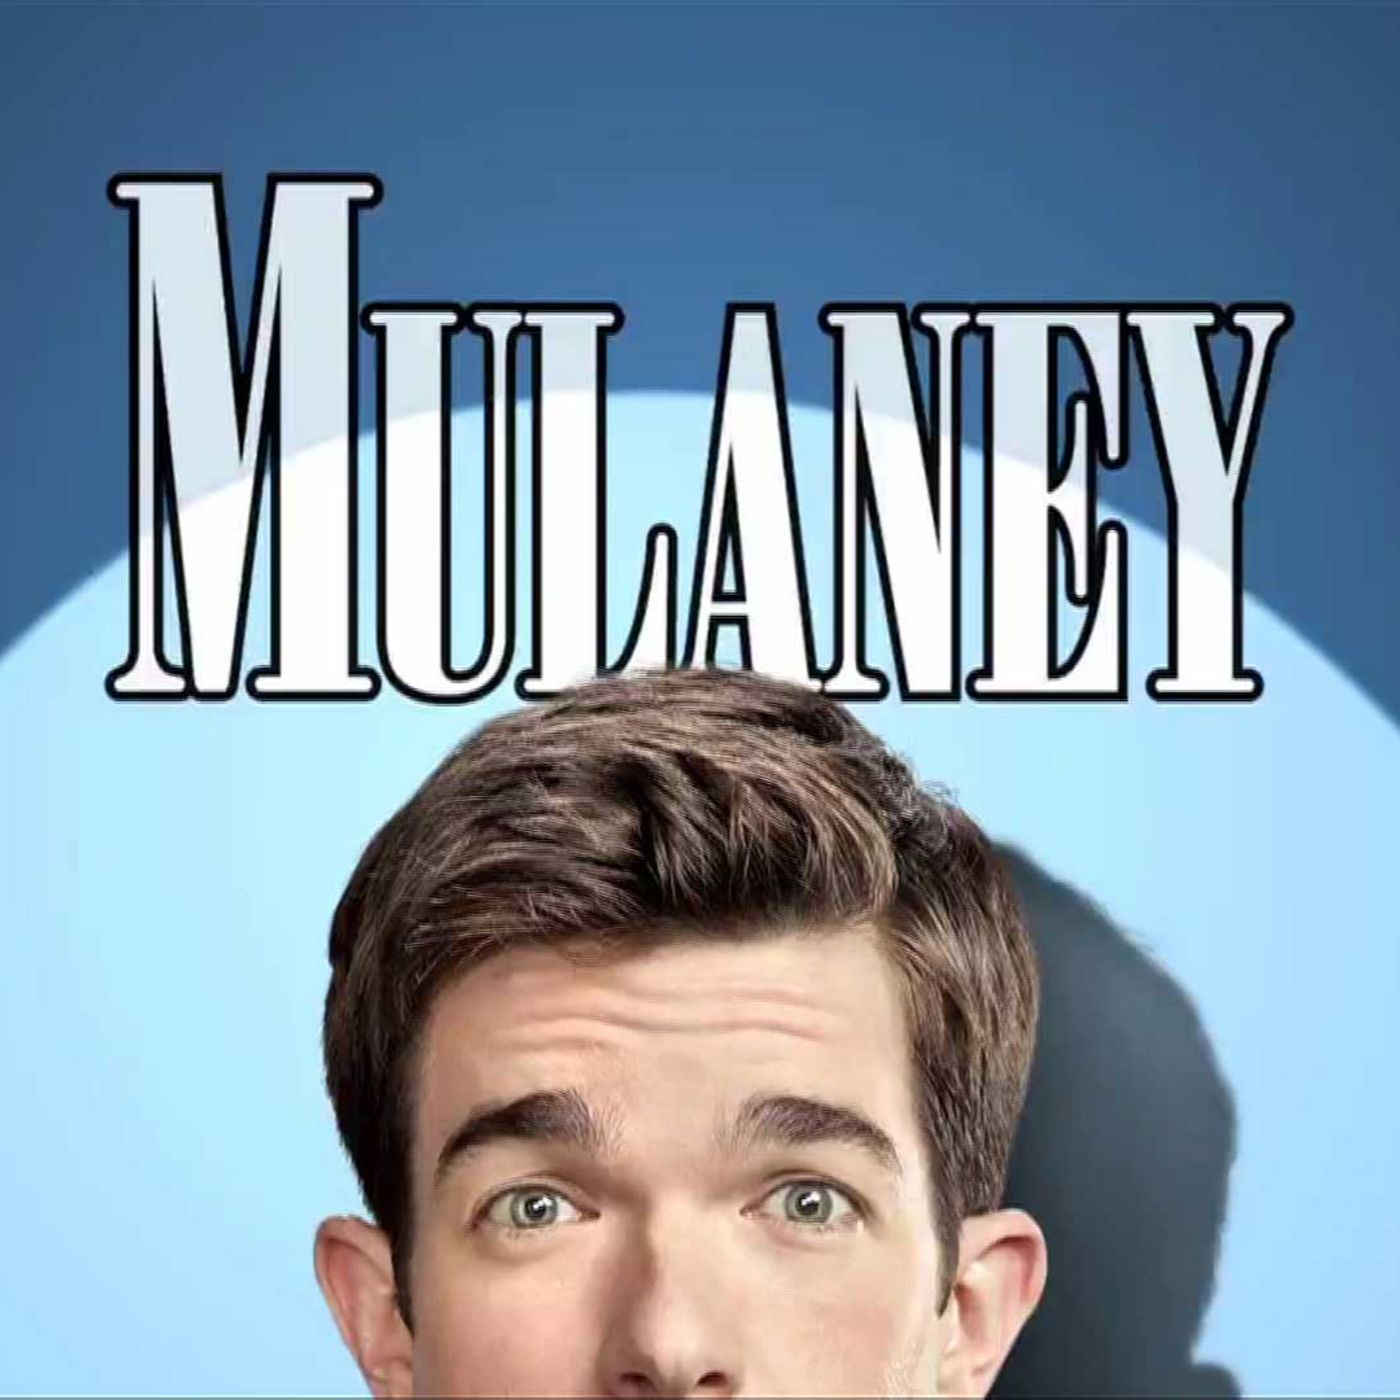 Episode 40 | Why is John Mulaney Funny?